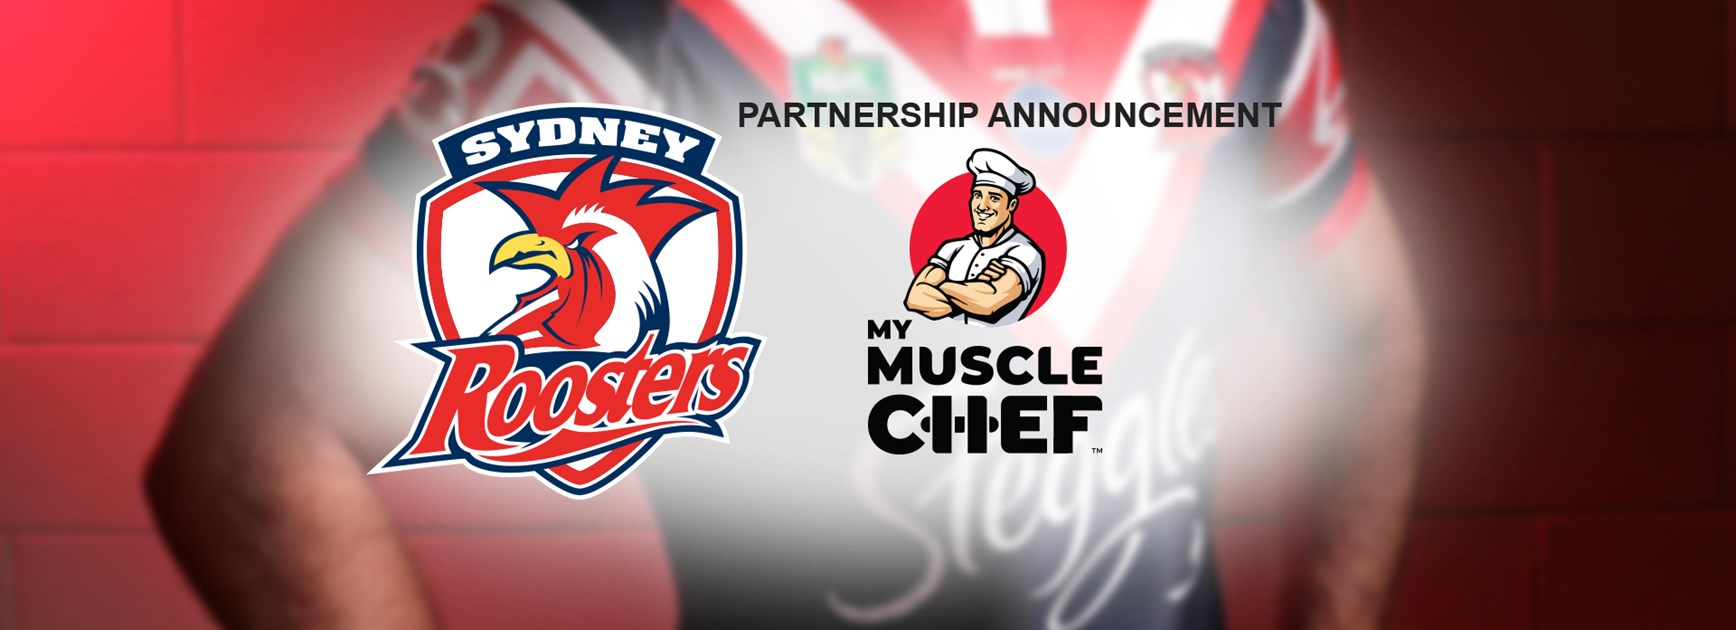 My Muscle Chef to fuel Sydney Roosters for the next two years